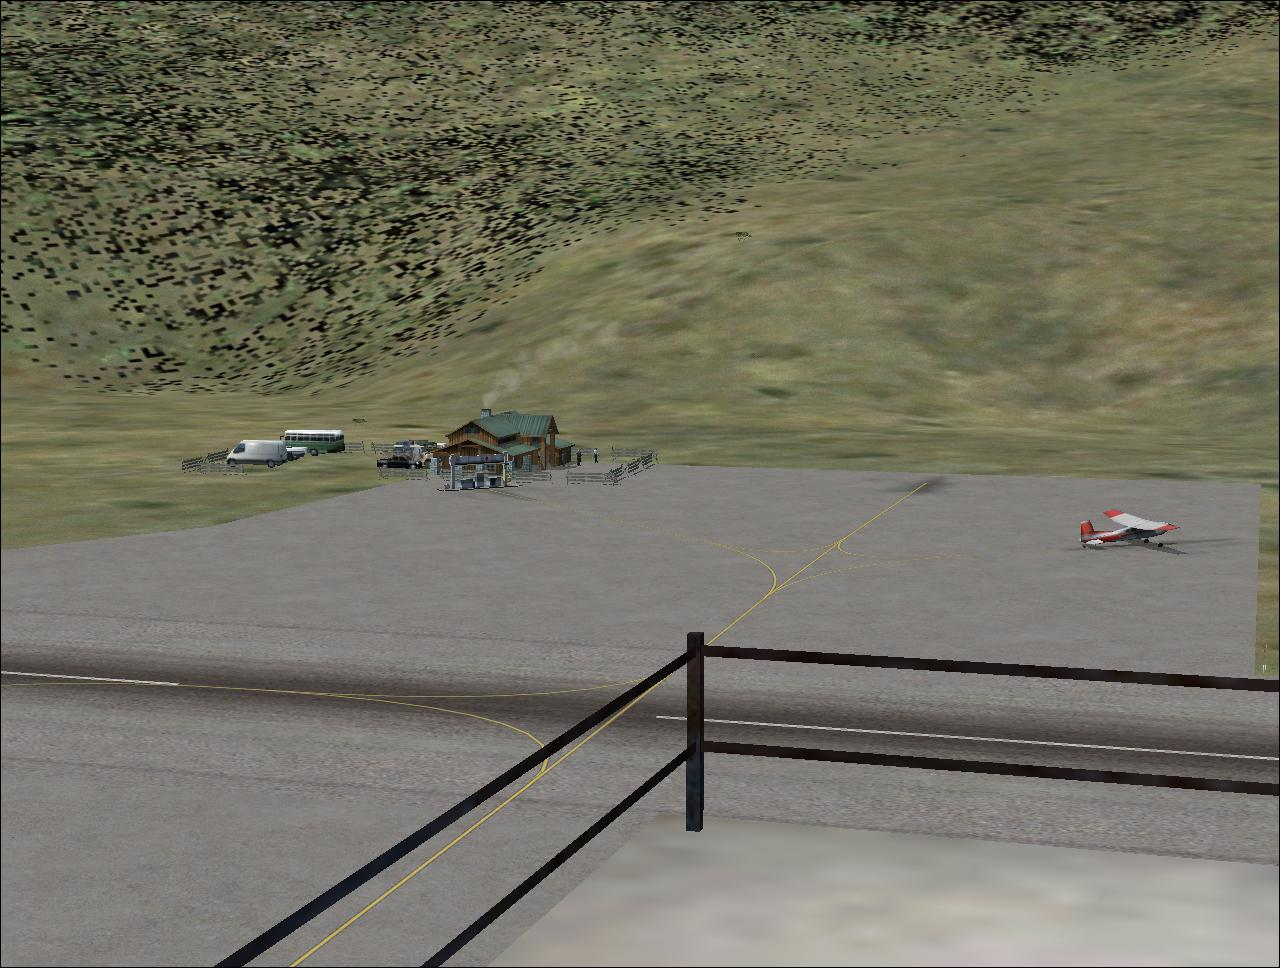 rp_FSX-Courchevel-View-From-Tower.JPG